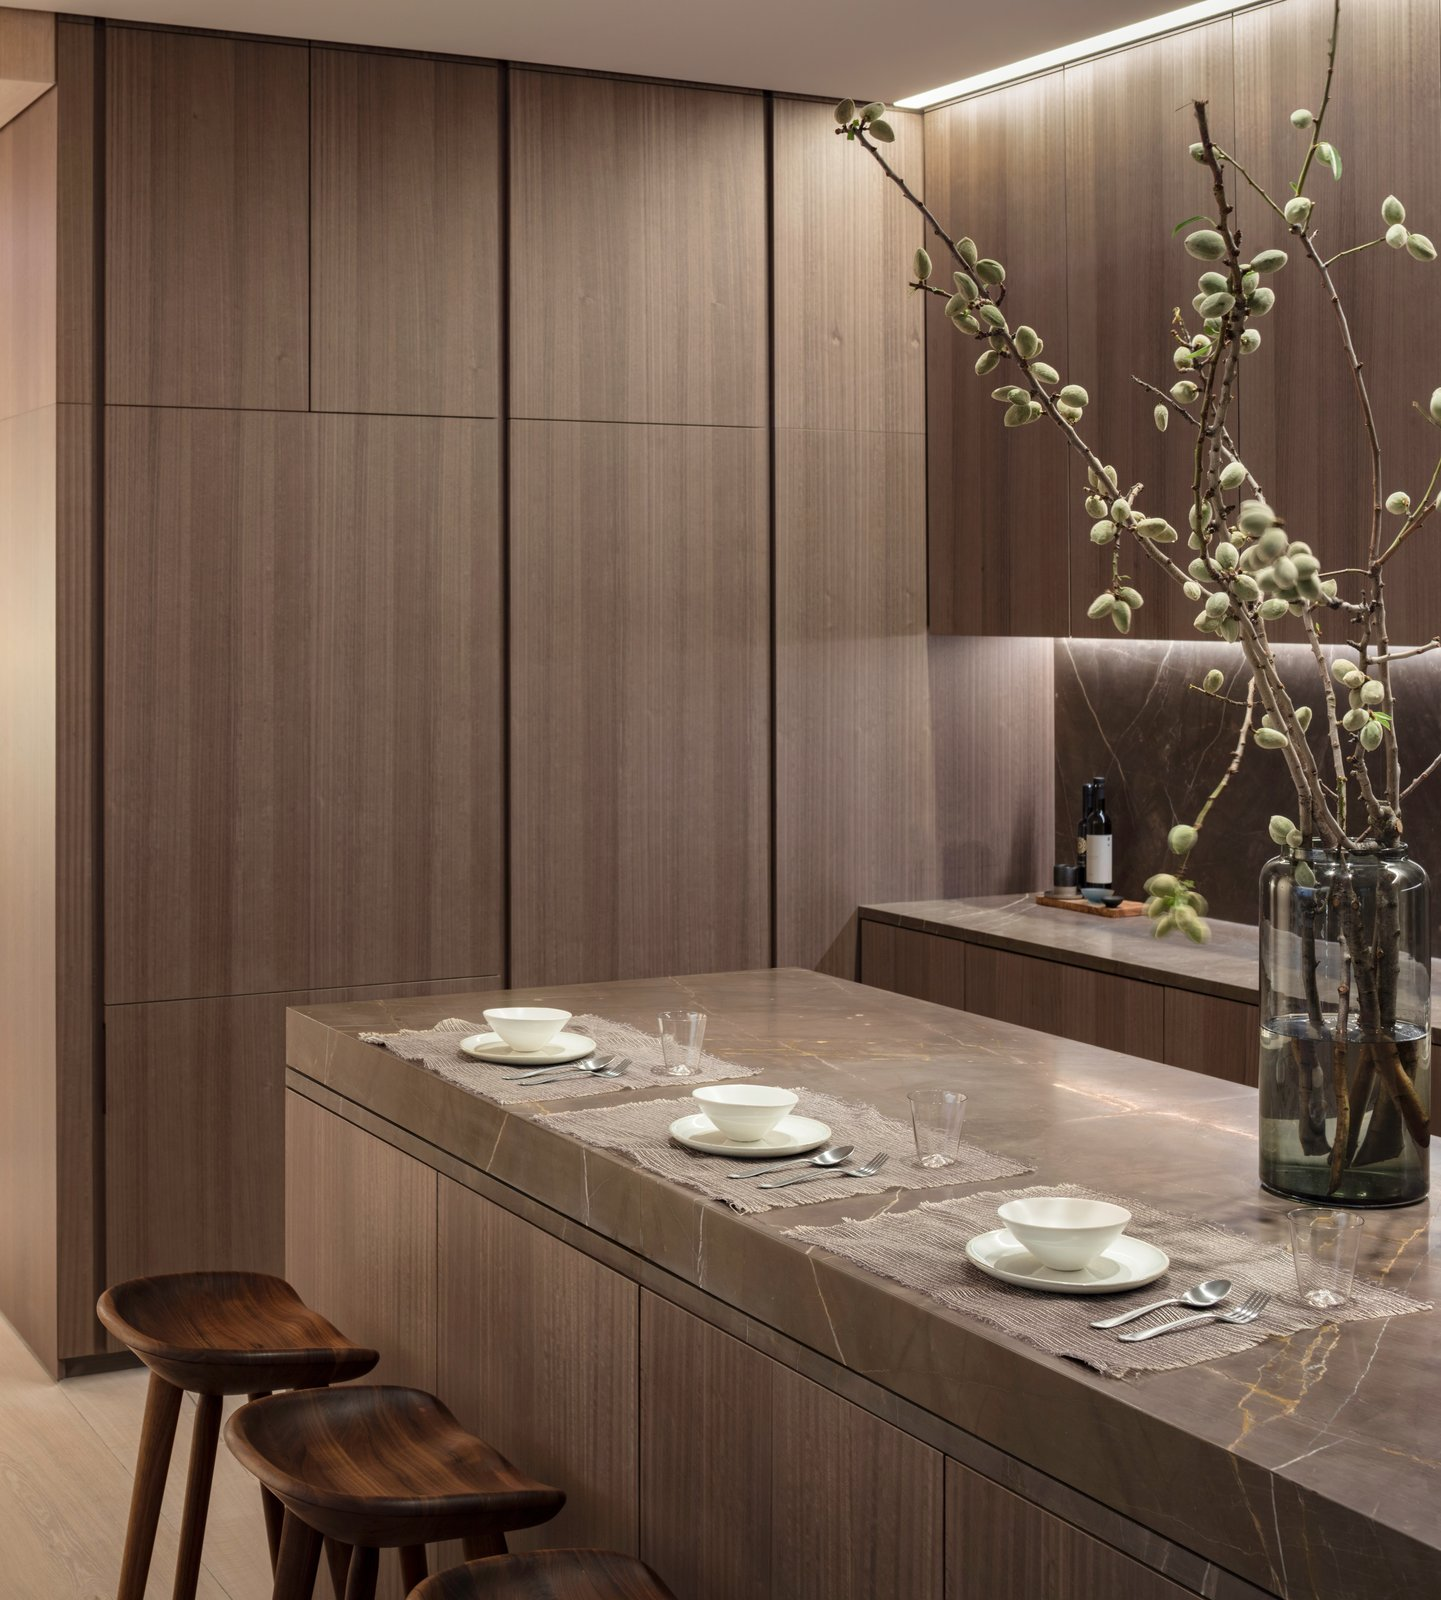 Kitchen The kitchen offers enhanced flexibility with a custom sliding Fango marble countertop by the Italian brand Minimal.  Photo 5 of 10 in A Look Into NYC's 152 Elizabeth Street, Tadao Ando's First Residential Project Outside of Asia